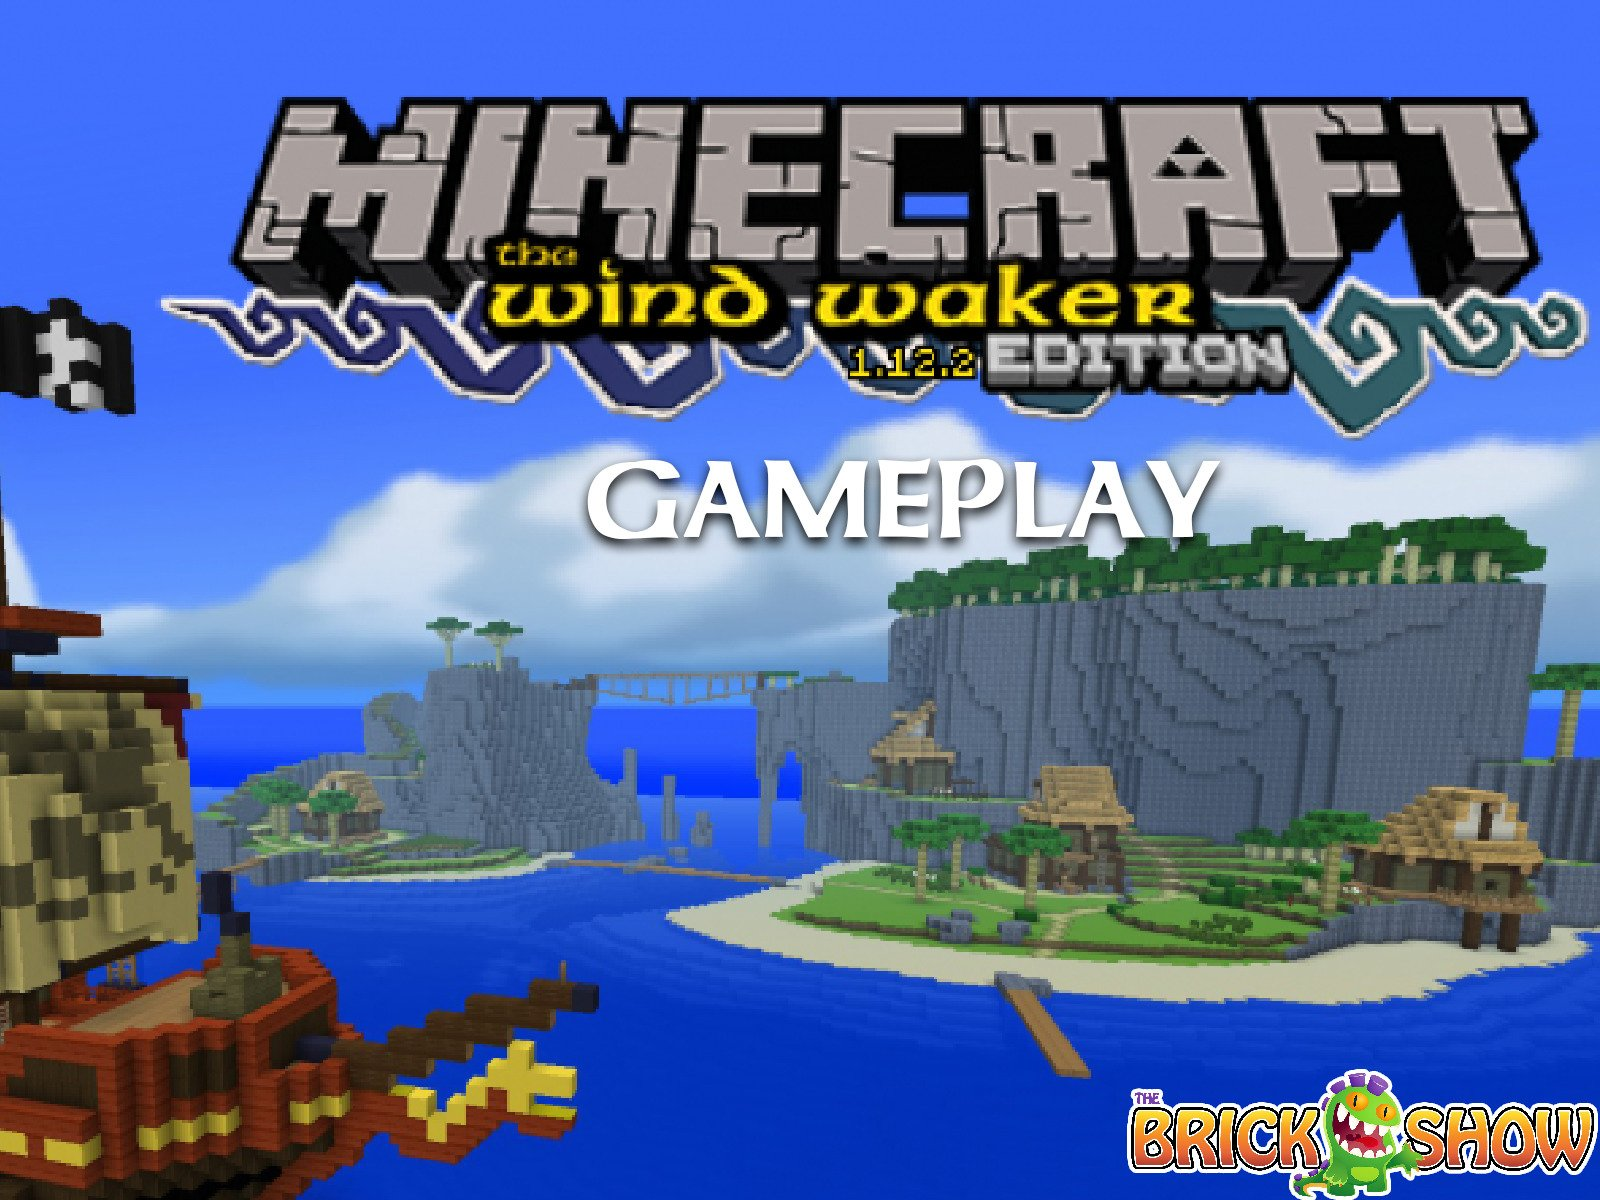 Clip: Minecraft Wind Waker Edition Gameplay